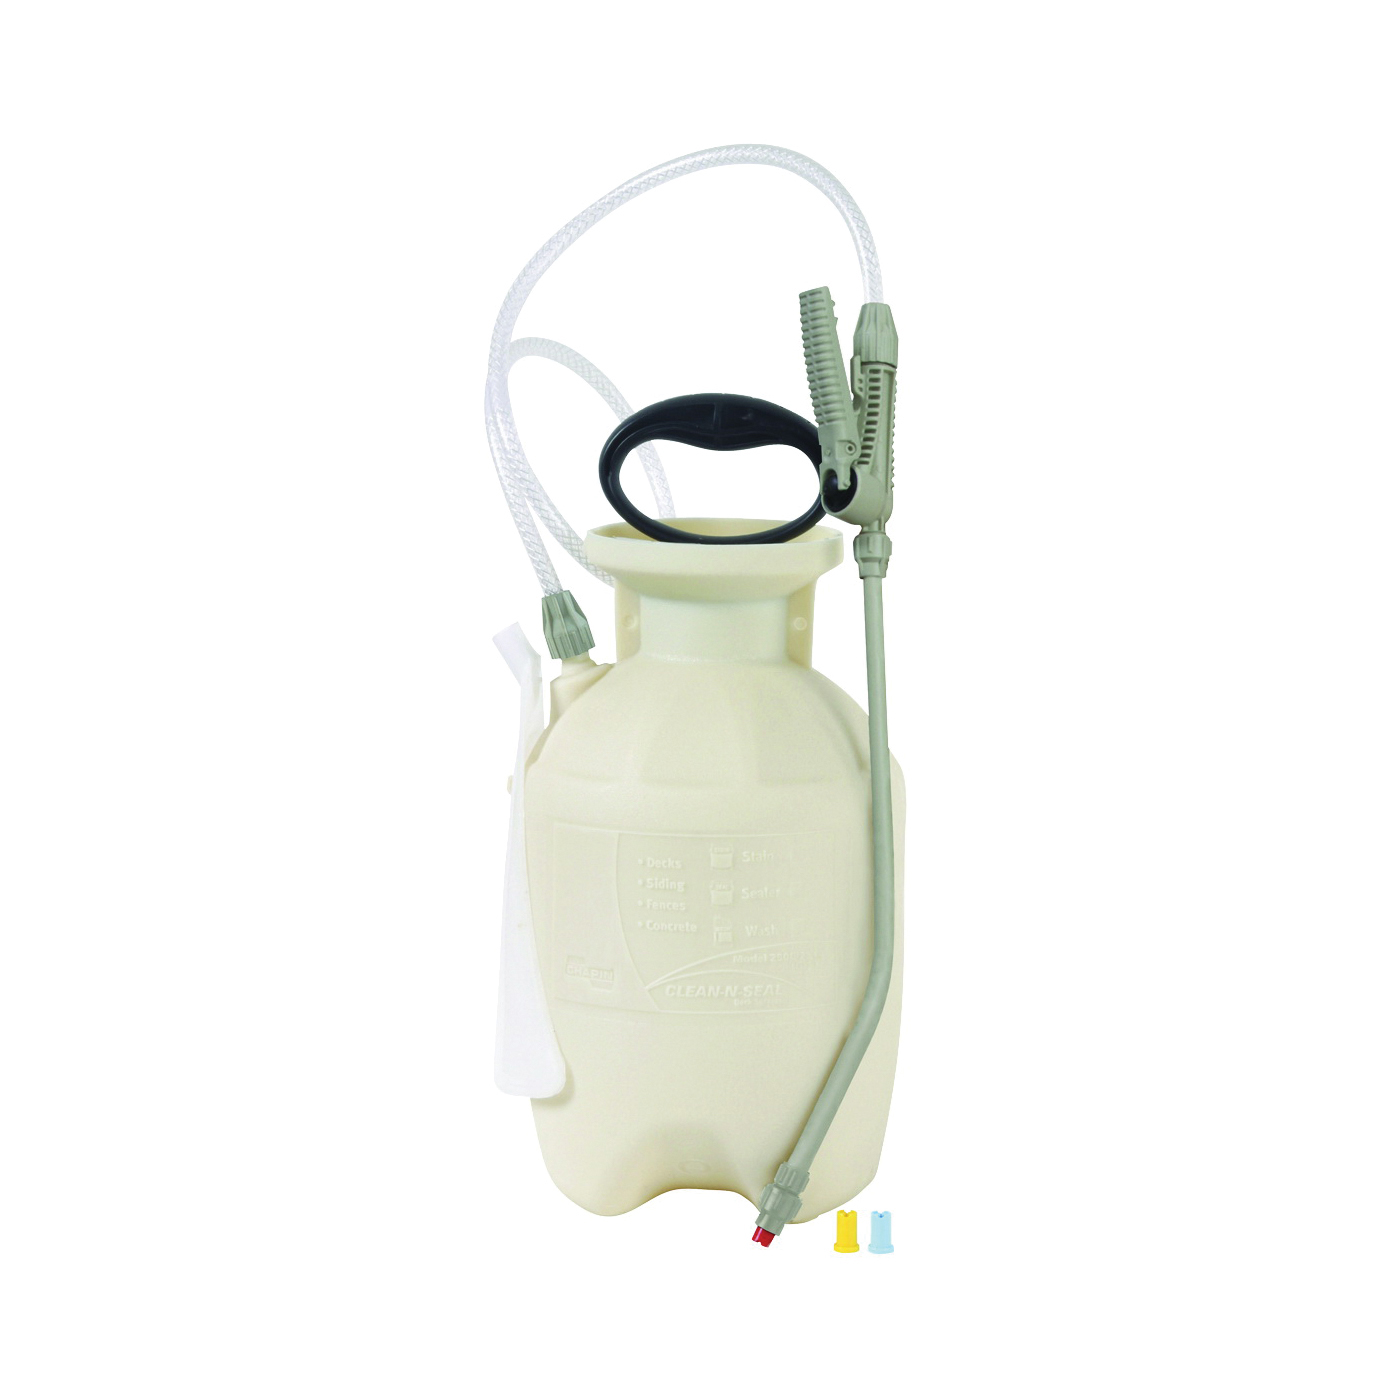 Picture of CHAPIN Clean 'N Seal 25012 Handheld Sprayer, 1 gal Tank, Poly Tank, 34 in L Hose